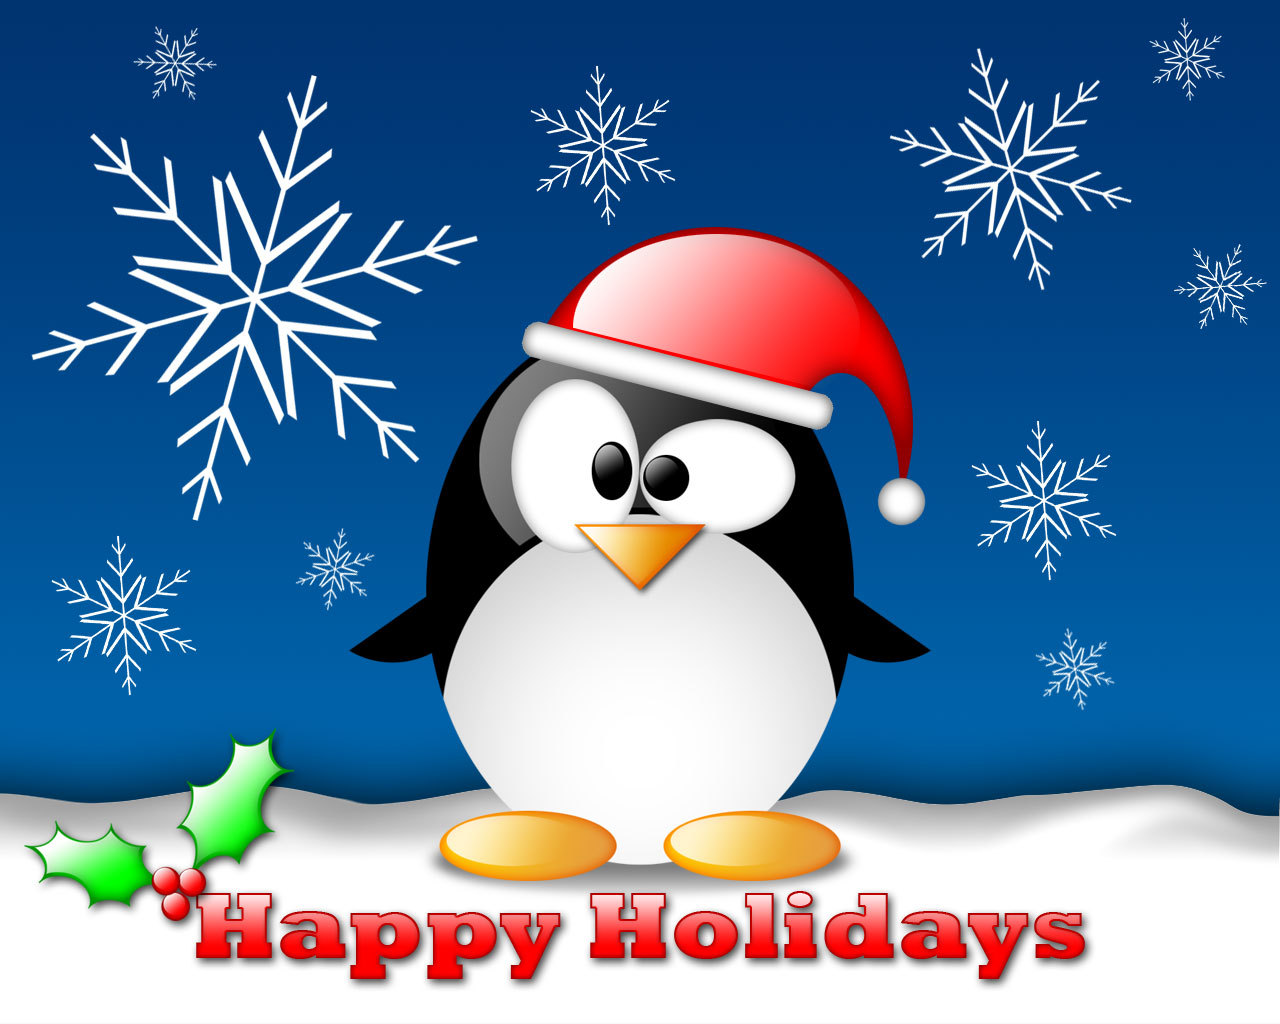 Holiday Backgrounds, Compatible - PC, Mobile, Gadgets| 1280x1024 px